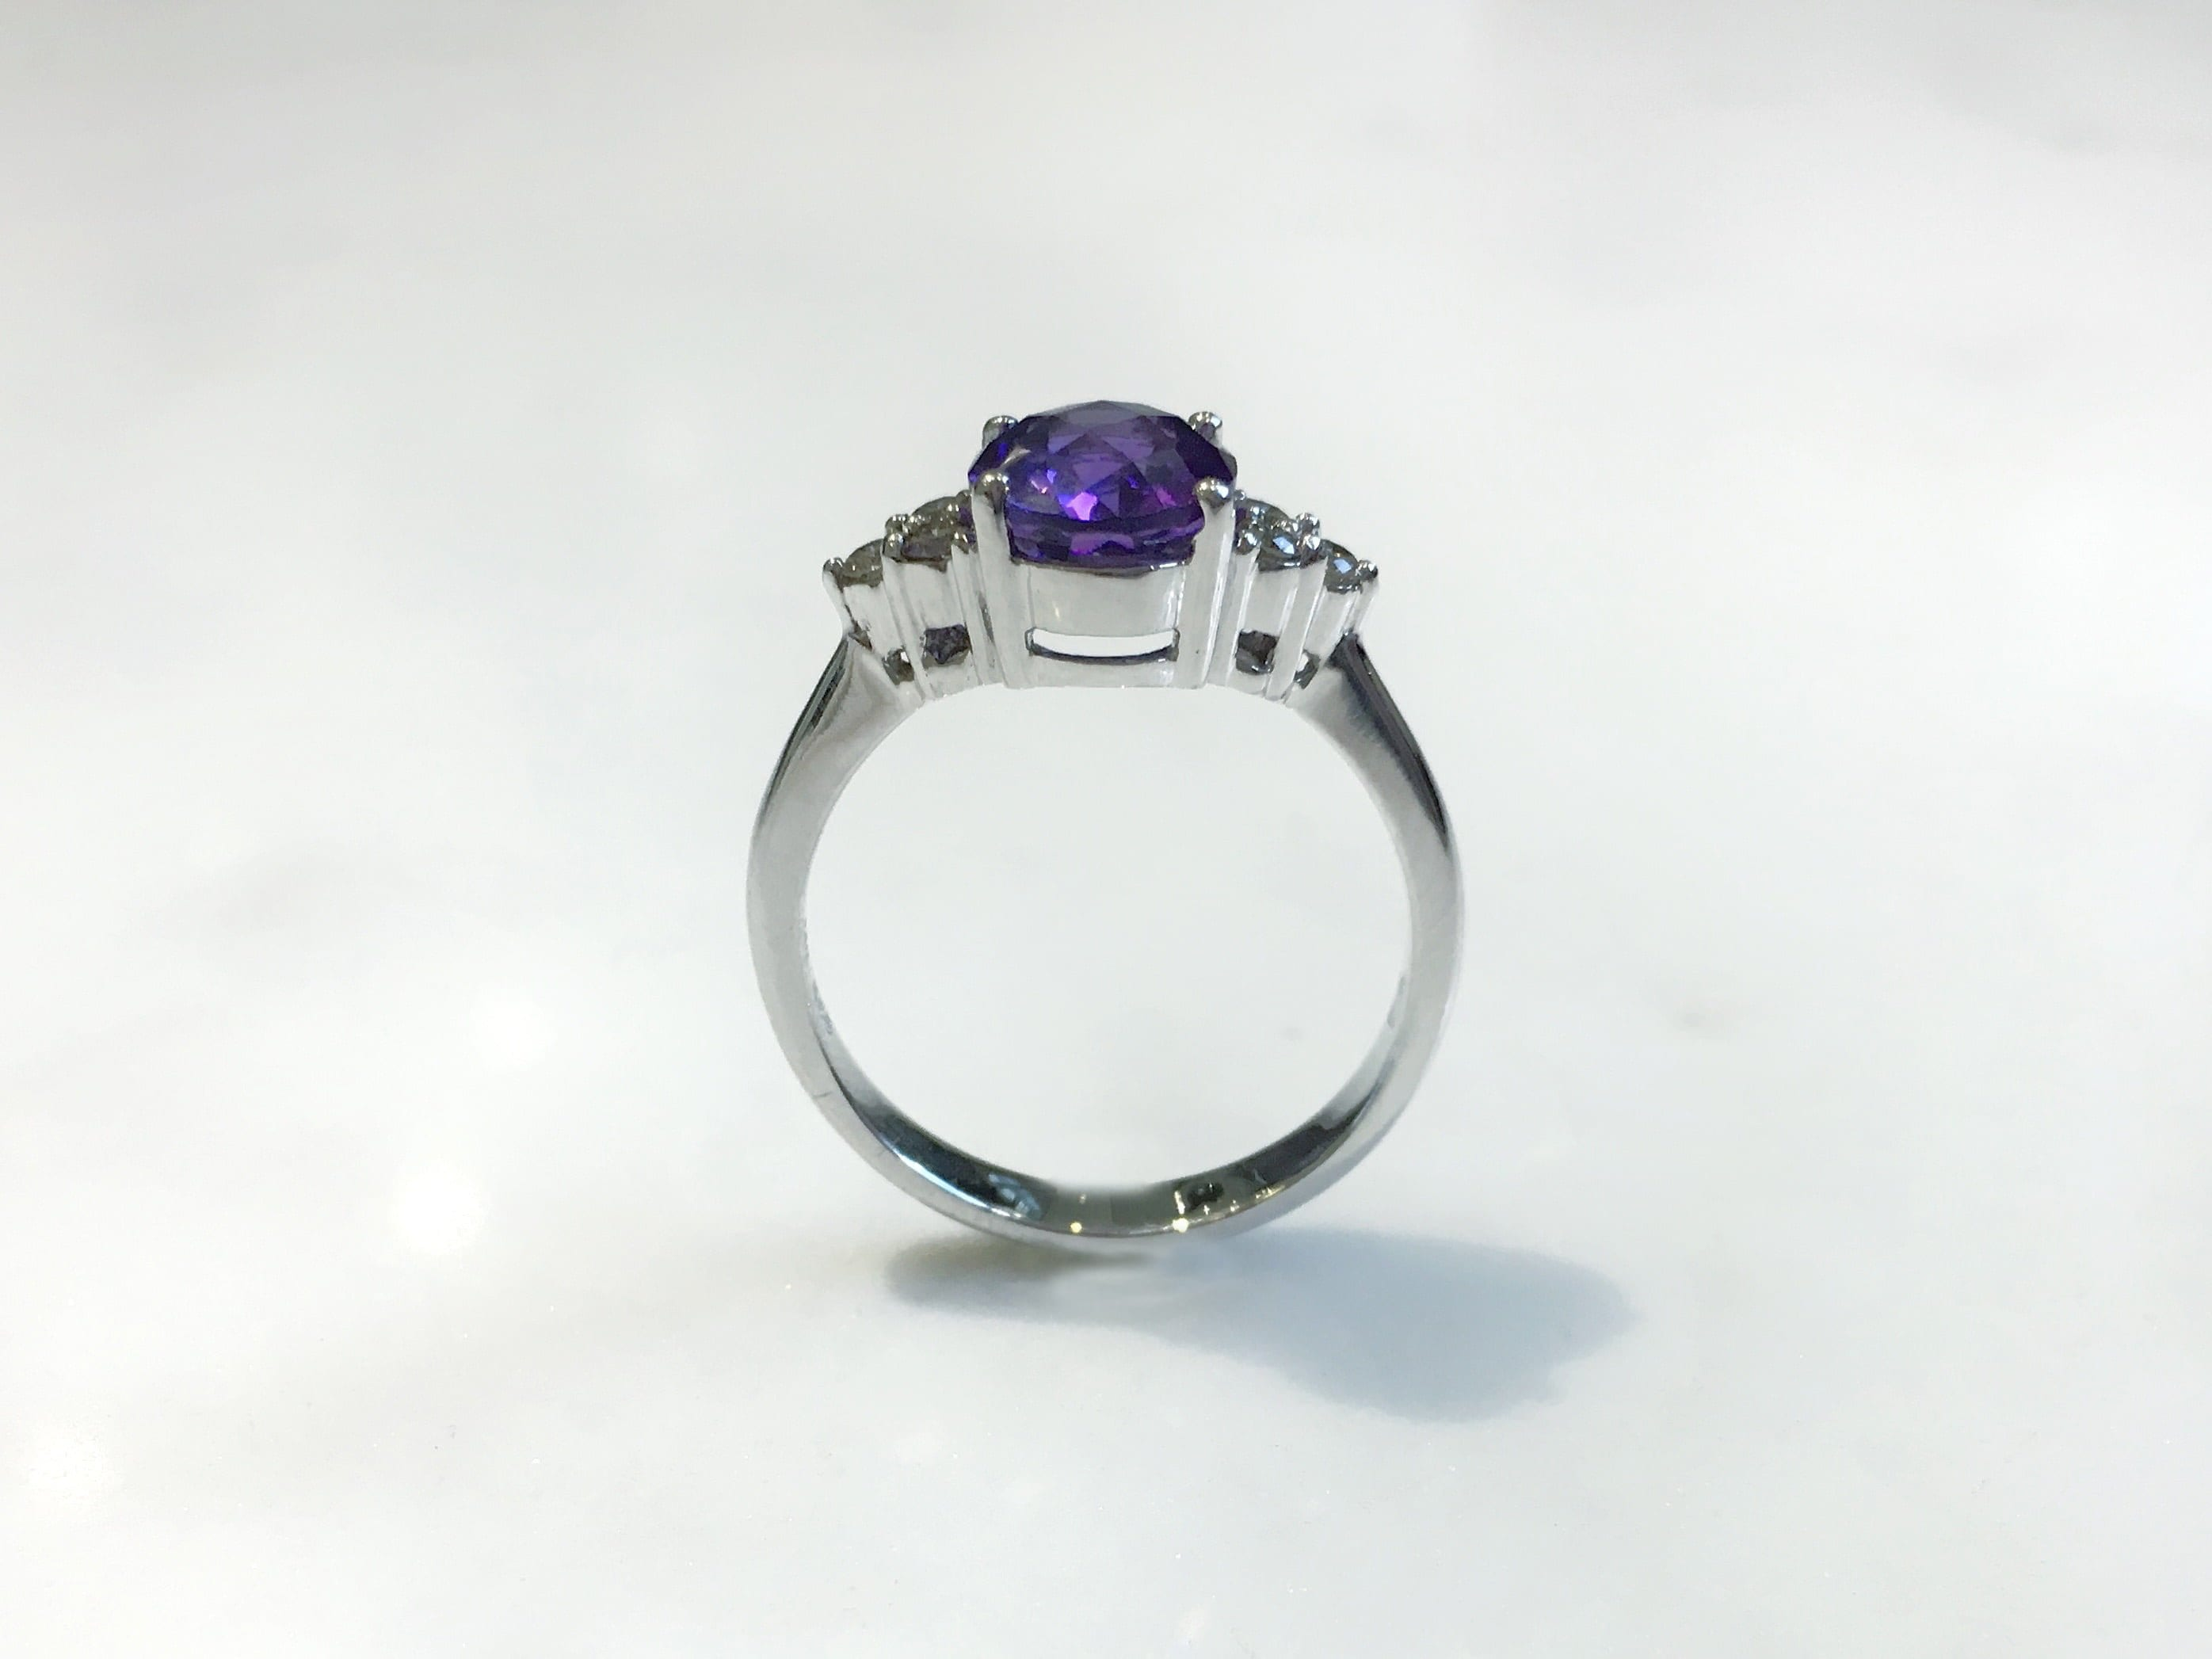 mauboussin s amethyst ring multi sapphire gold white engagement jewelry rings amethist women